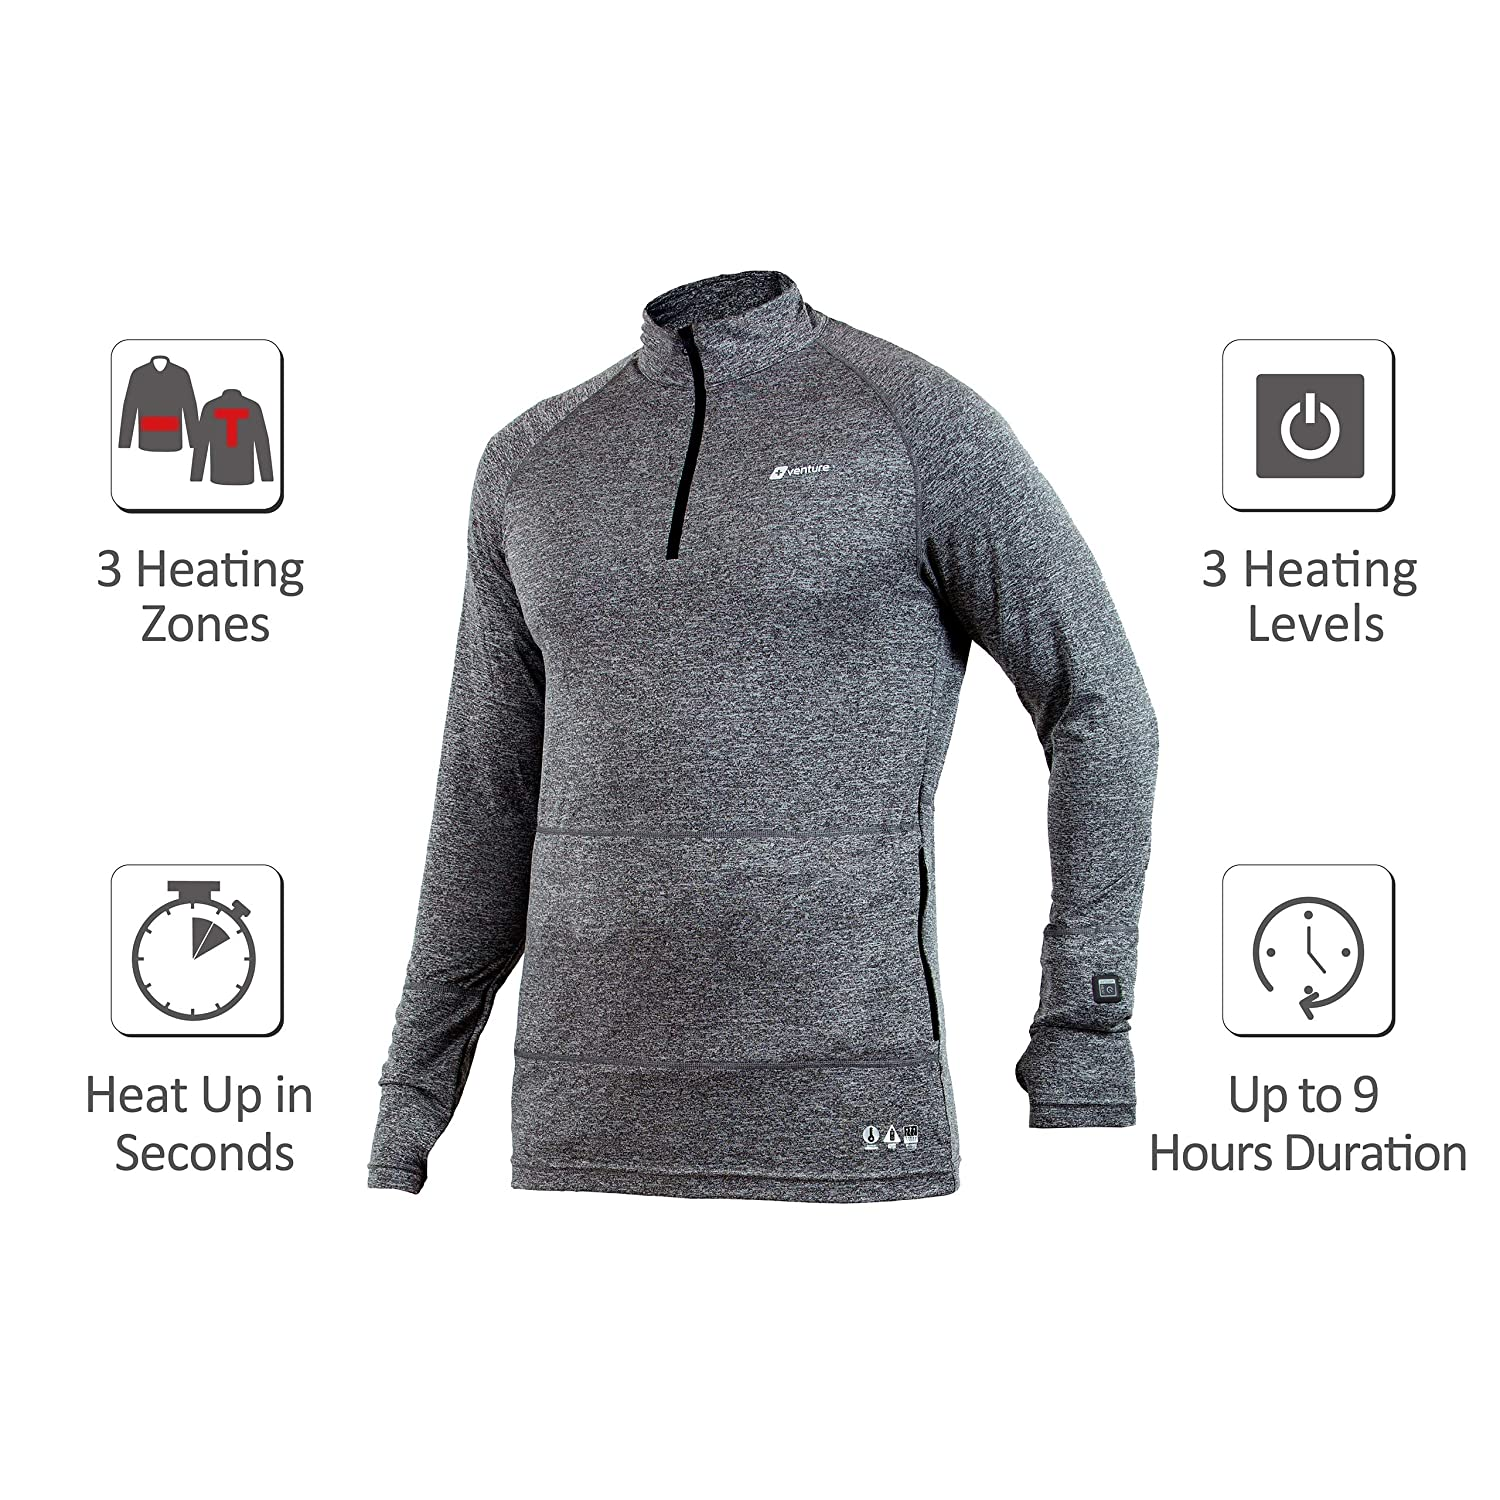 Battery Heated Clothing >> Venture Heat Men S Heated Base Layer With Battery 6 Hour The Nomad 1 4 Zip Heated Shirt For Men